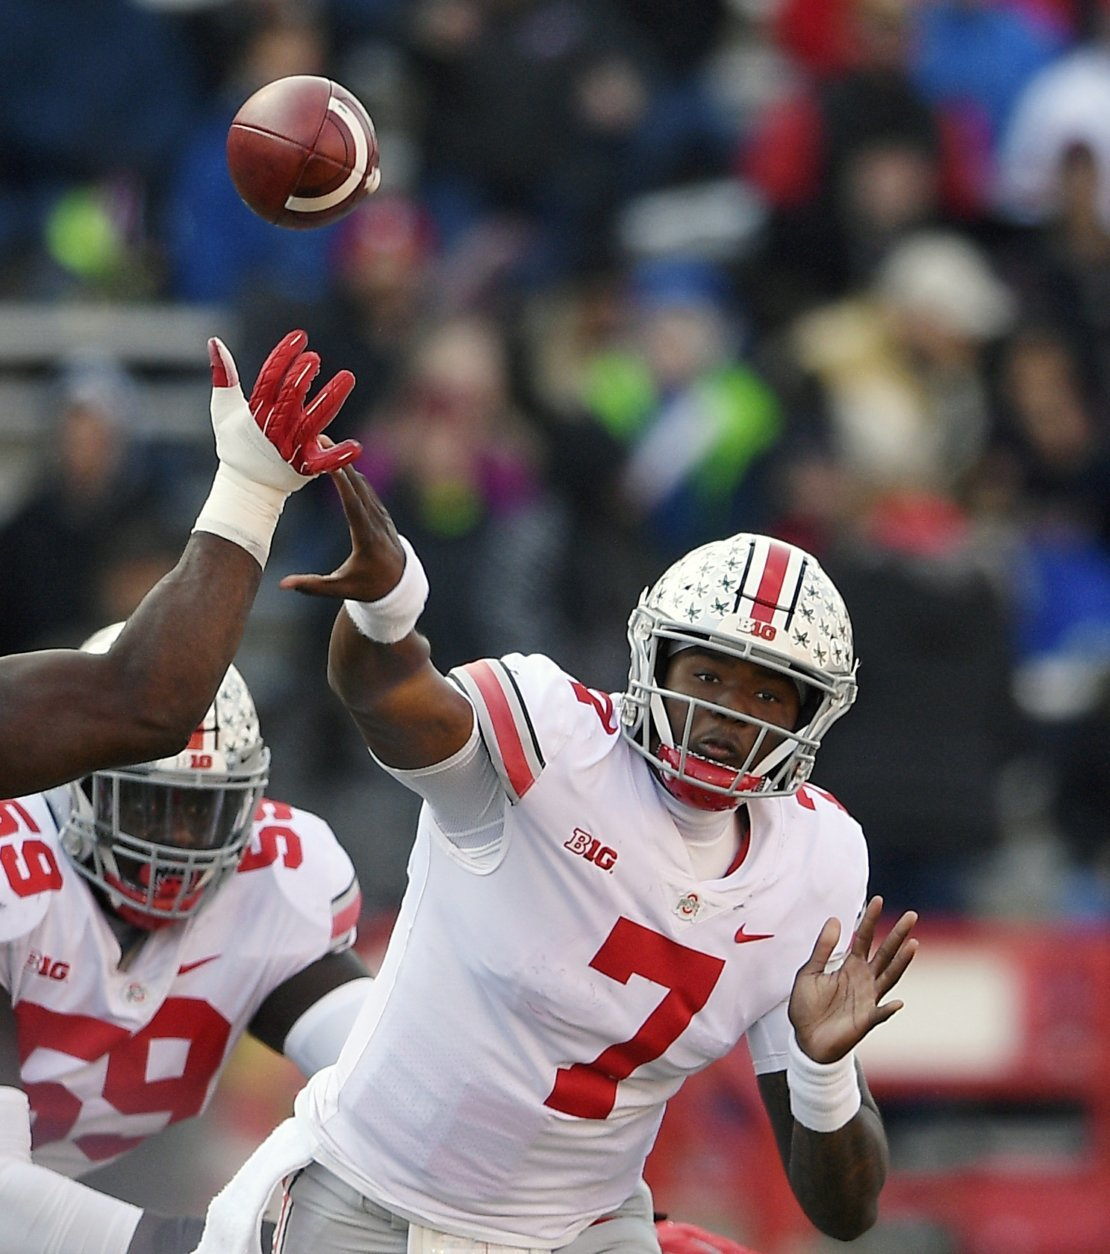 FILE - In this Saturday, Nov. 17, 2018, file photo, Ohio State quarterback Dwayne Haskins Jr. (7) passes under pressure from a Maryland defender during the second half of an NCAA football game in College Park, Md. Haskins was named offensive player of the year when The Associated Press All-Big Ten Conference team was released Wednesday, Dec. 5, 2018. (AP Photo/Nick Wass, File)